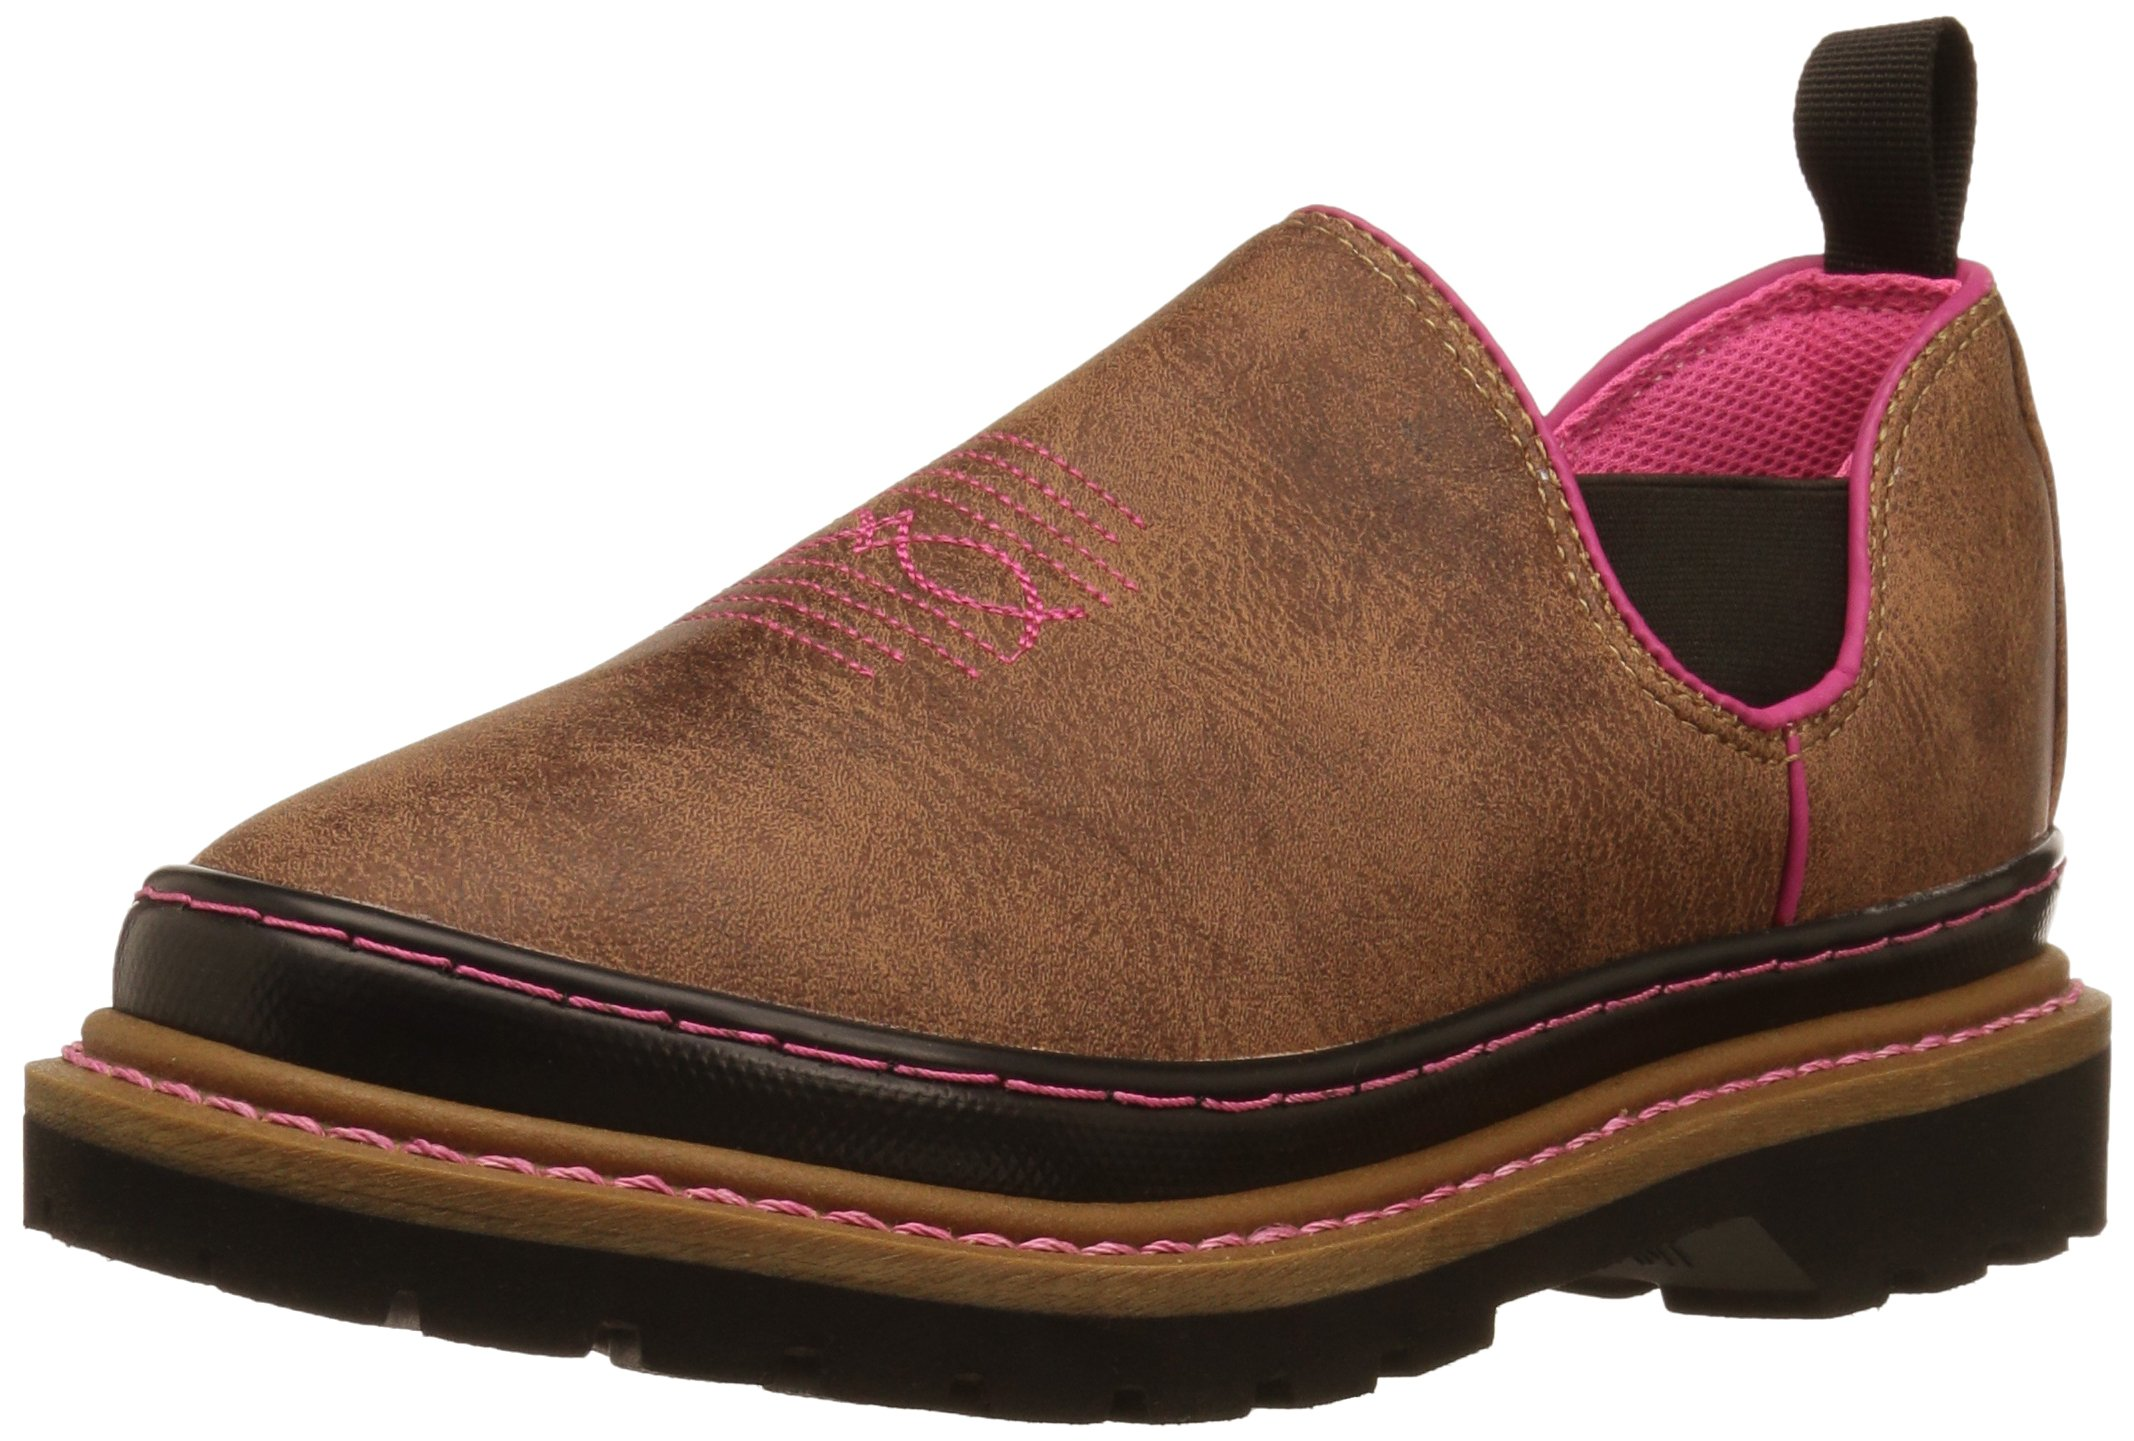 Western Chief Women's Romeo Ankle Boot Industrial Shoe, Country, 7 M US by Western Chief